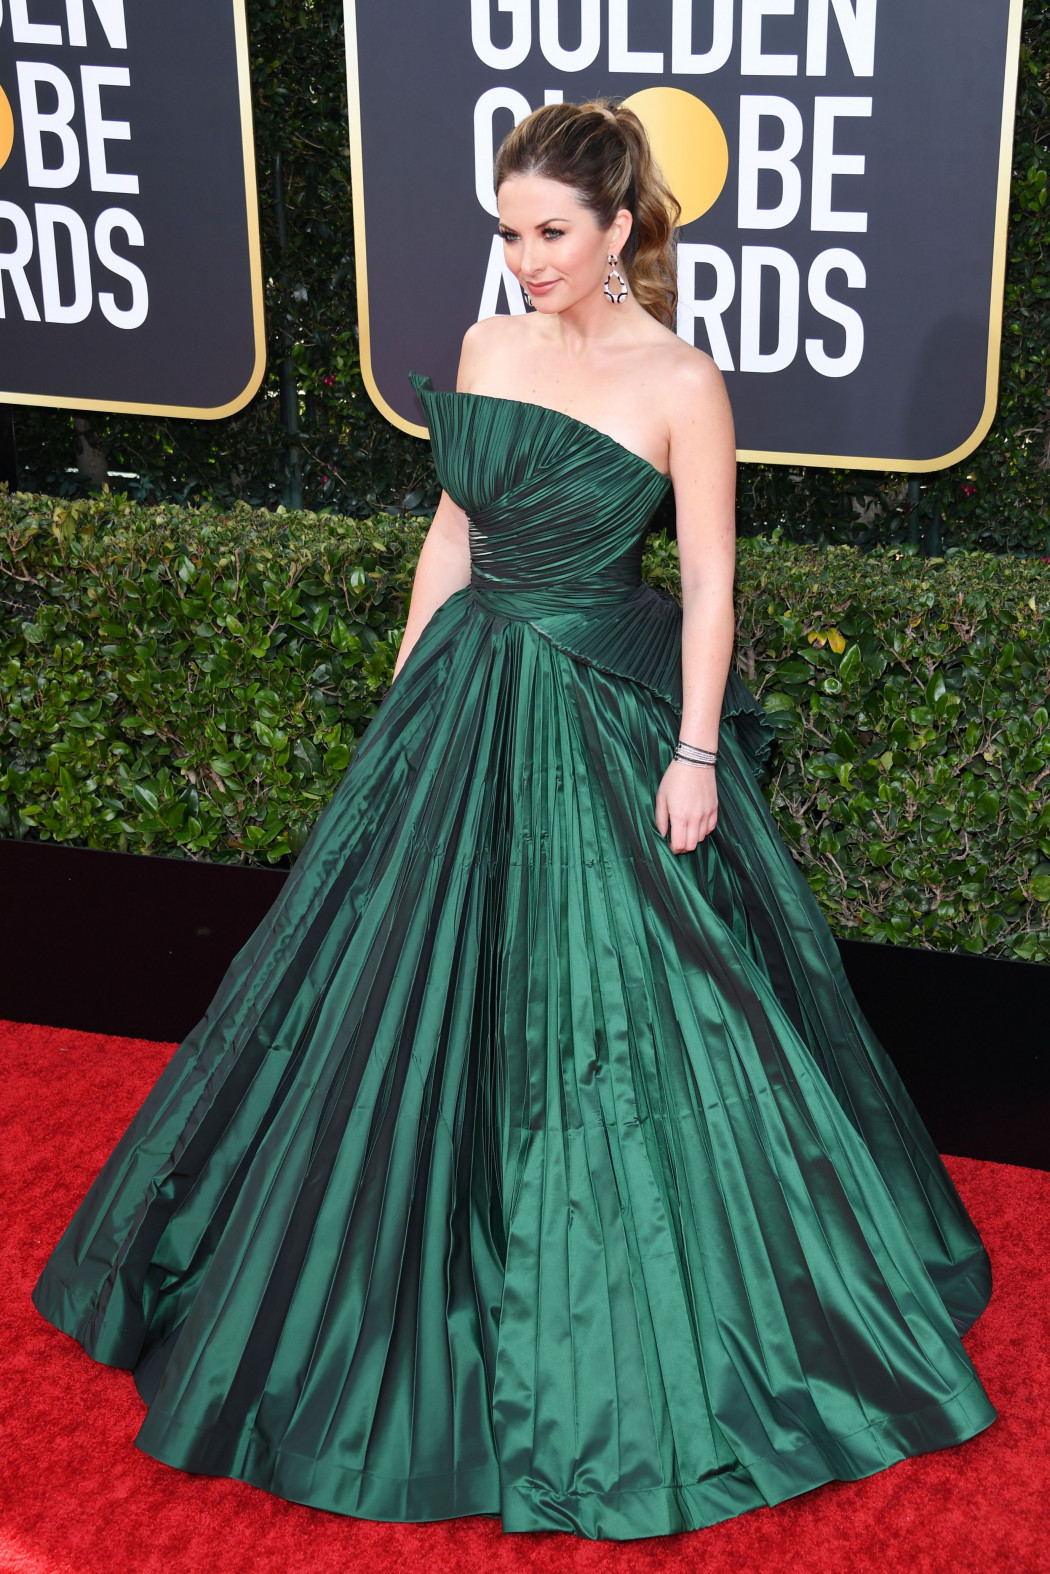 Golden Globes 2020 : les plus beaux looks du tapis rouge - 20